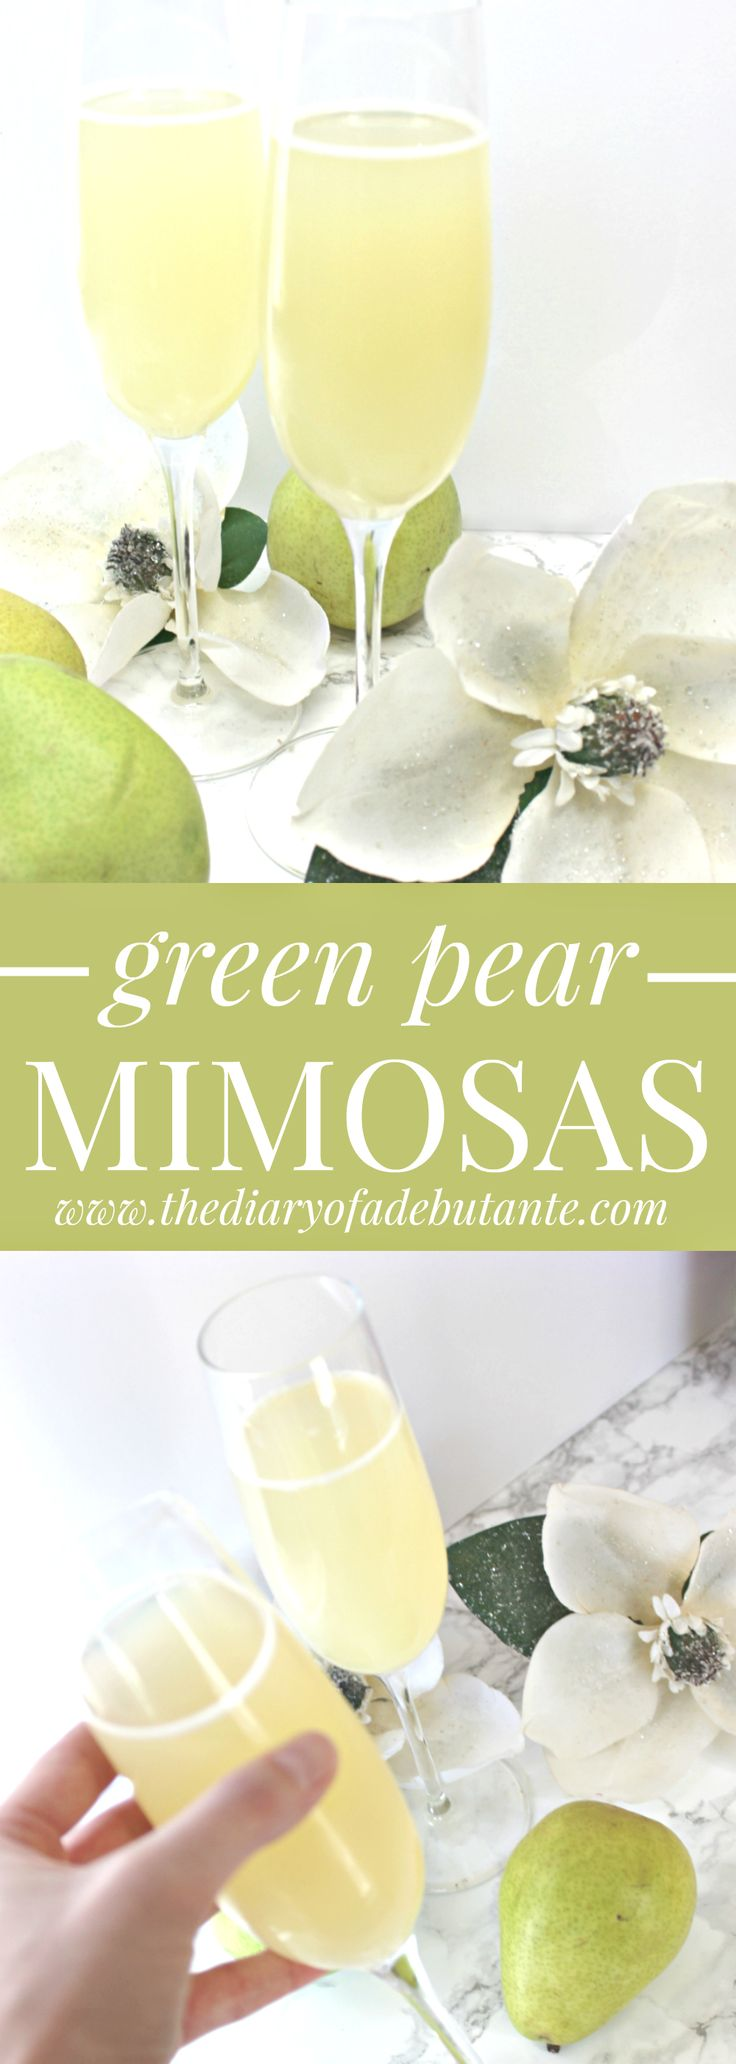 Delicious and healthy green pear mimosa recipe using pear nectar instead of juice